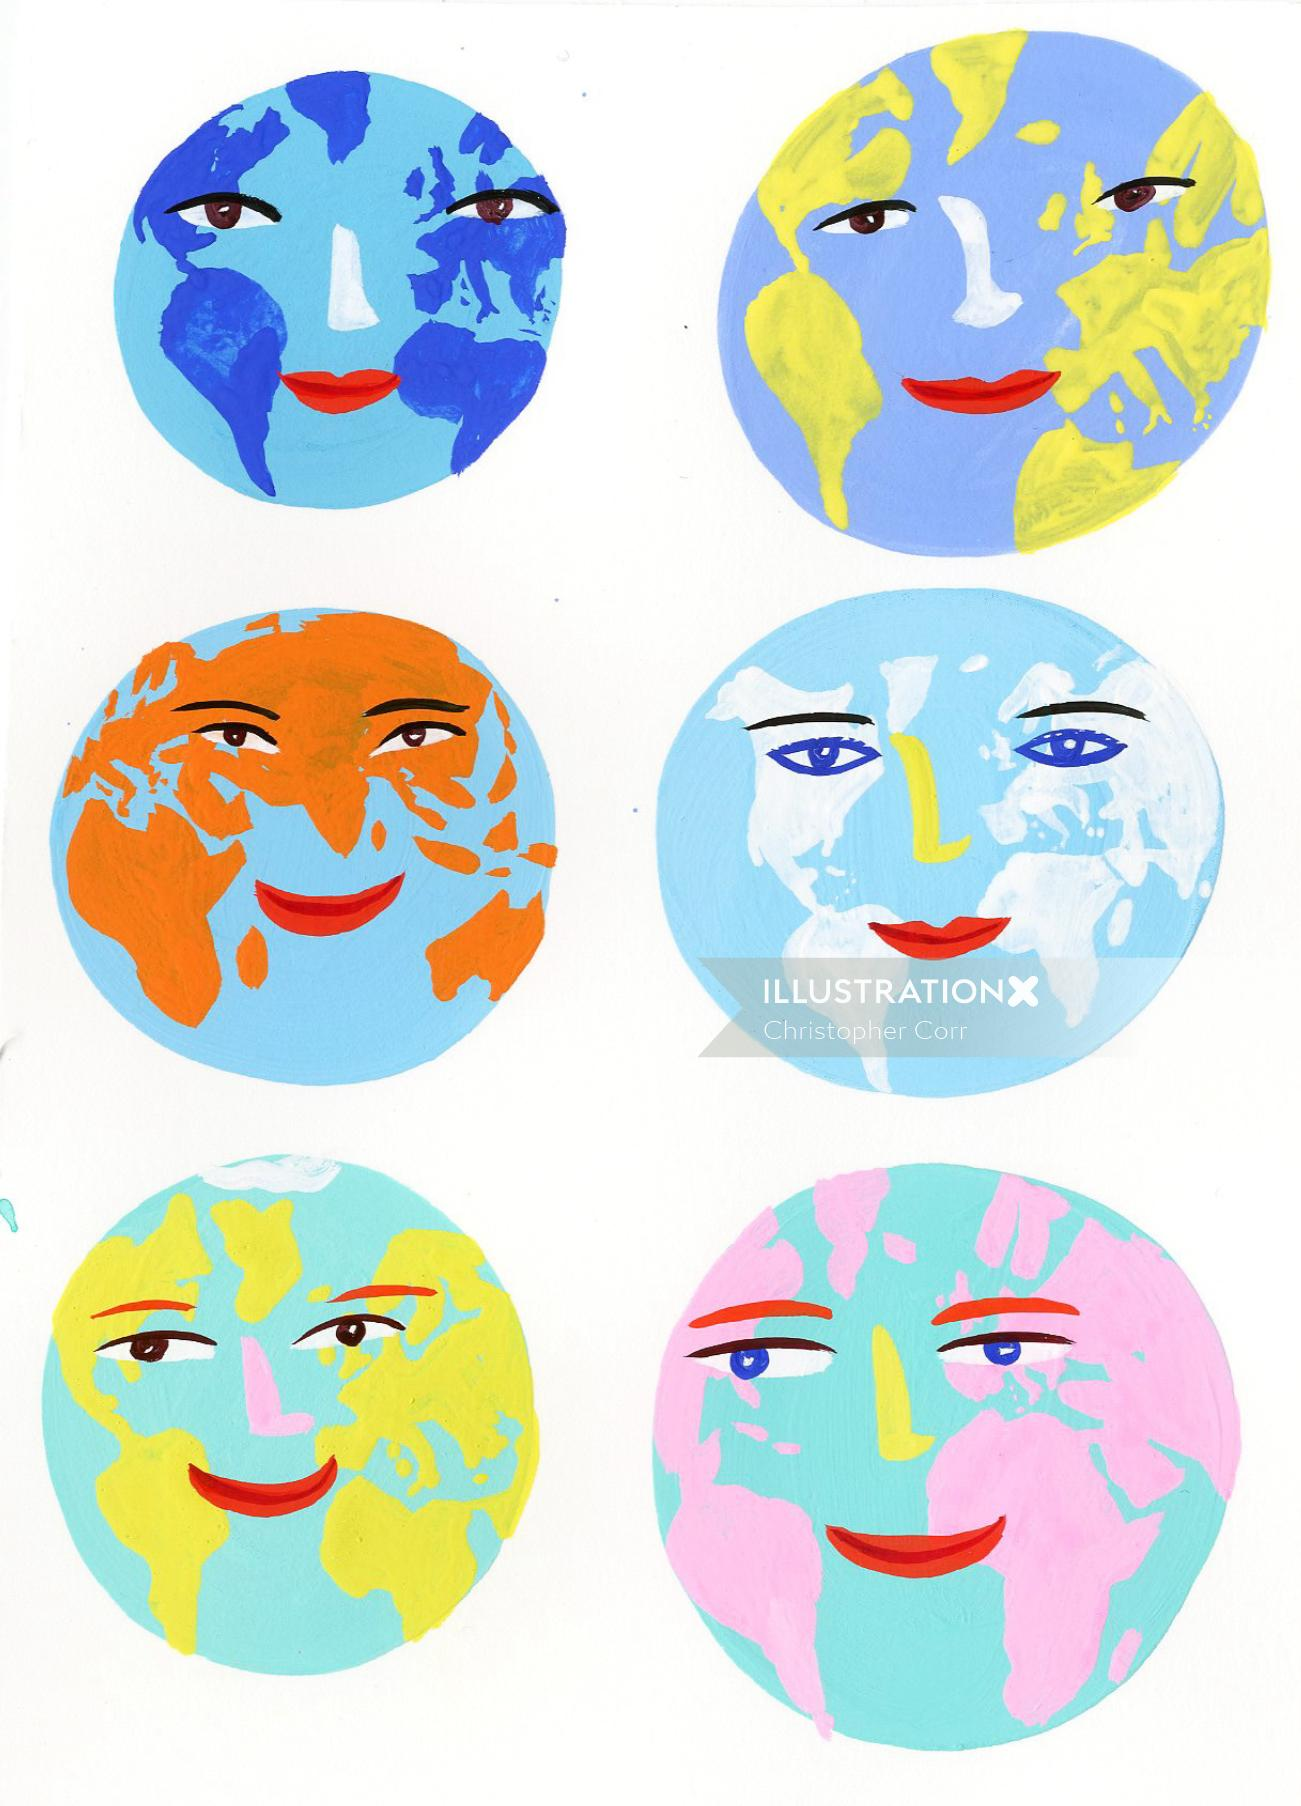 Face worlds illustration by Christopher Corr